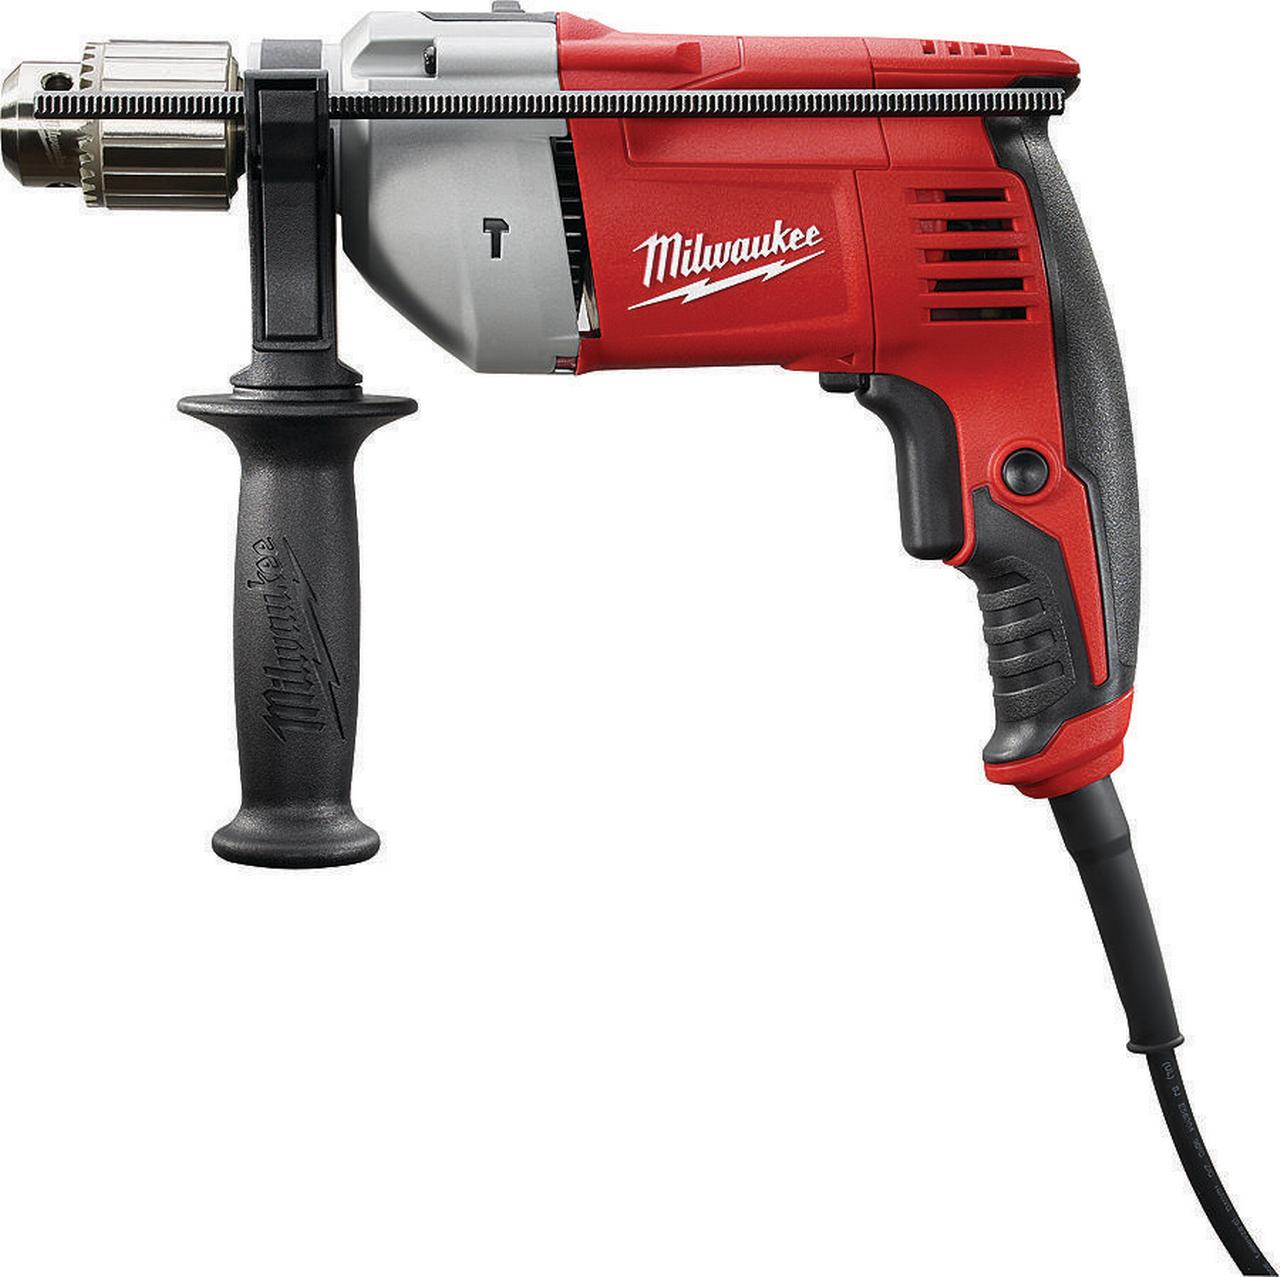 Milwaukee 1 2 In. (13 Mm) Hammer Drill by Milwaukee